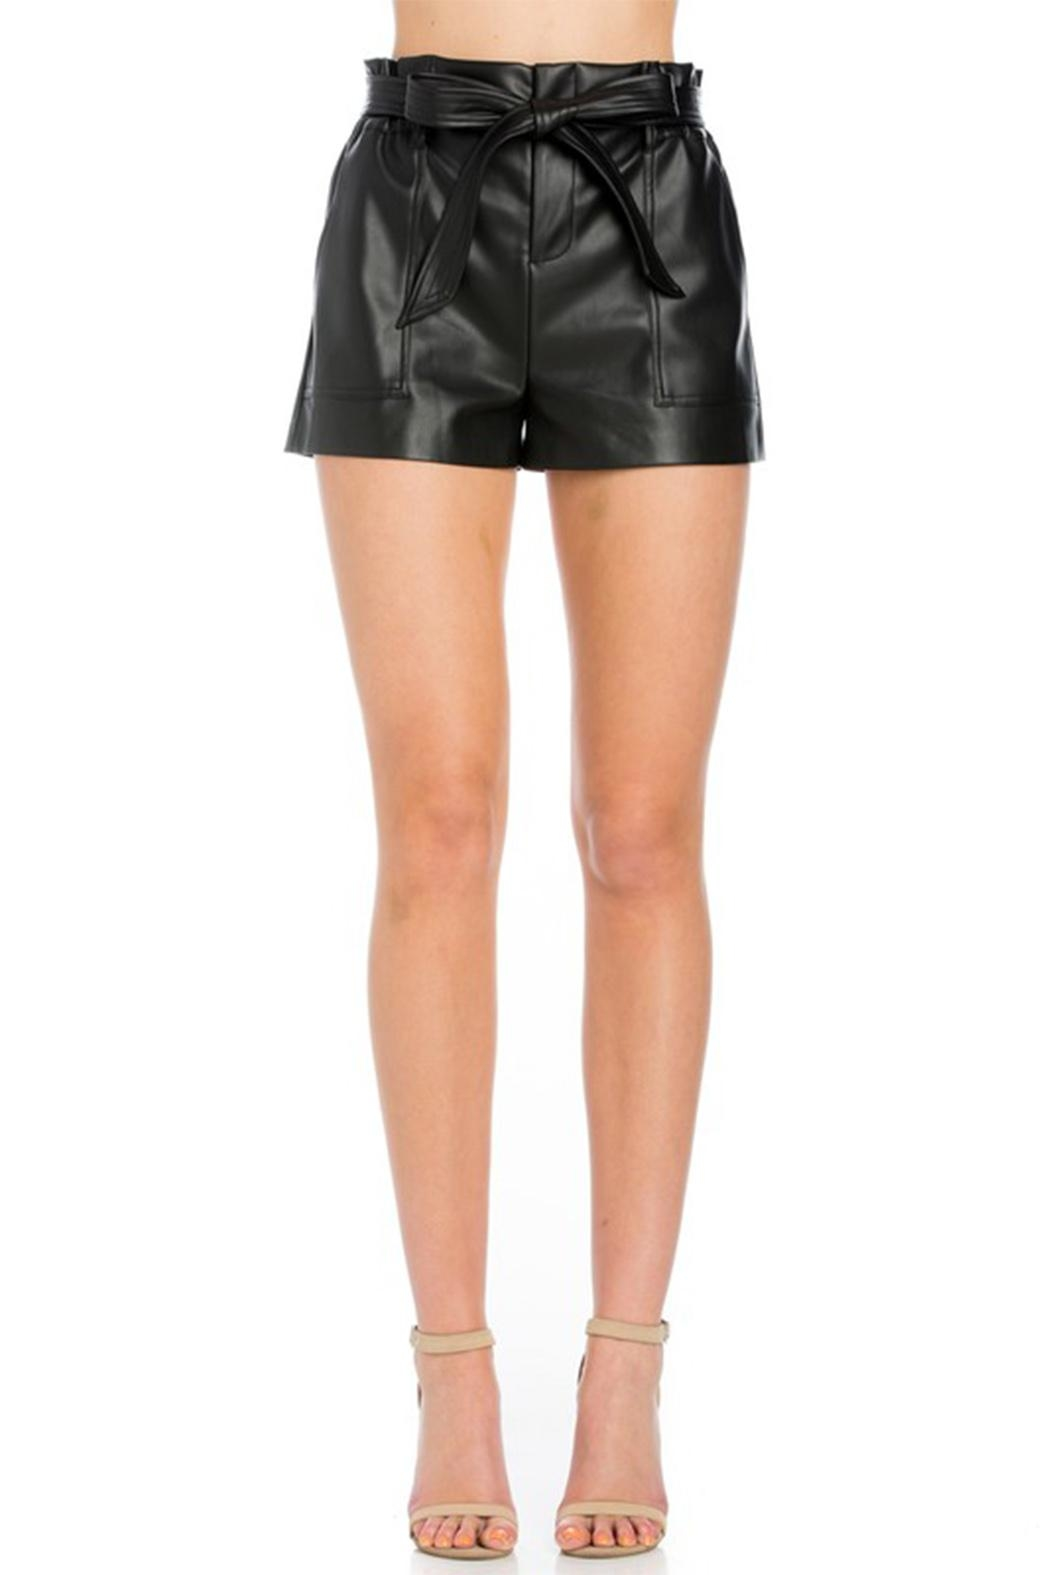 Comme USA Black Belted Shorts - Side Cropped Image